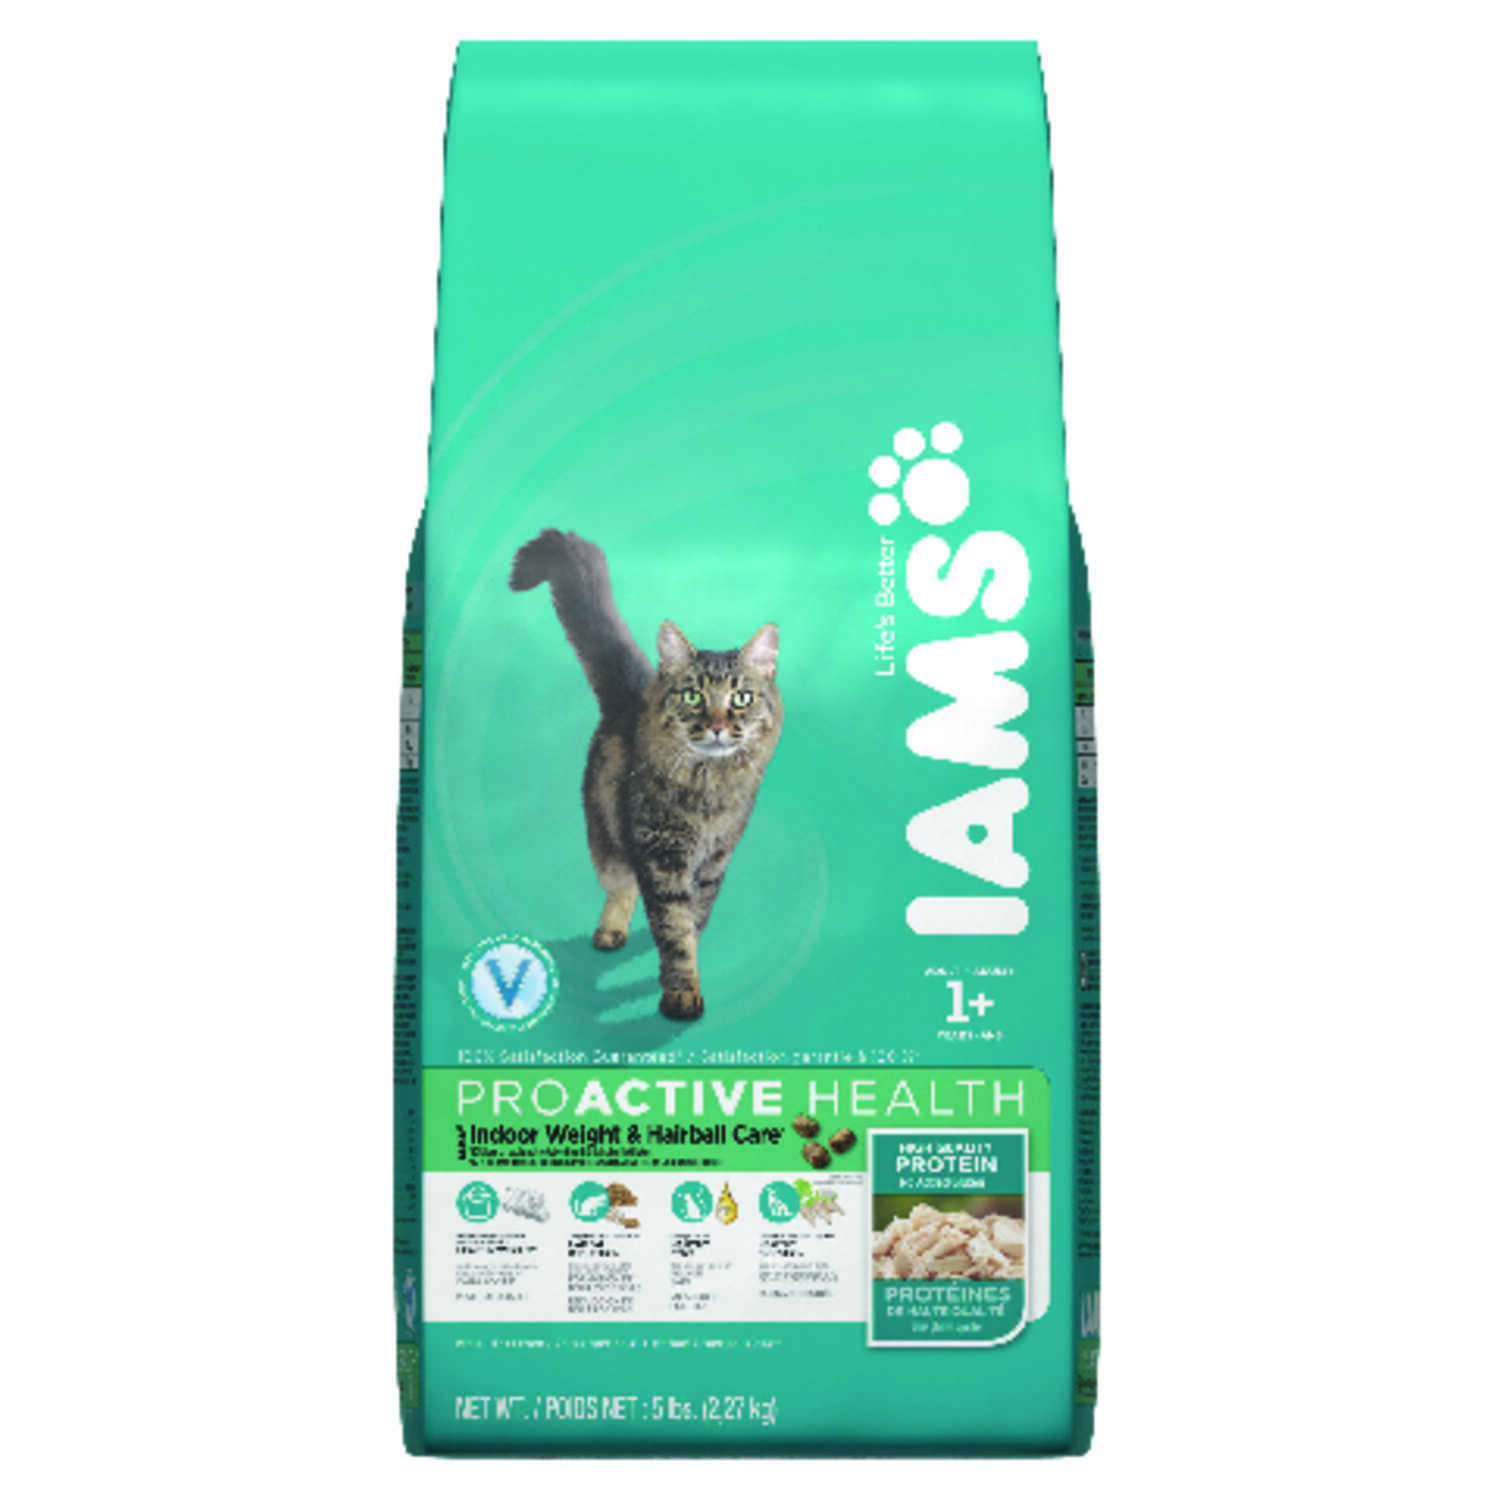 Iams Proactive Health Indoor Weight Hairball Care Natural Dry Cat